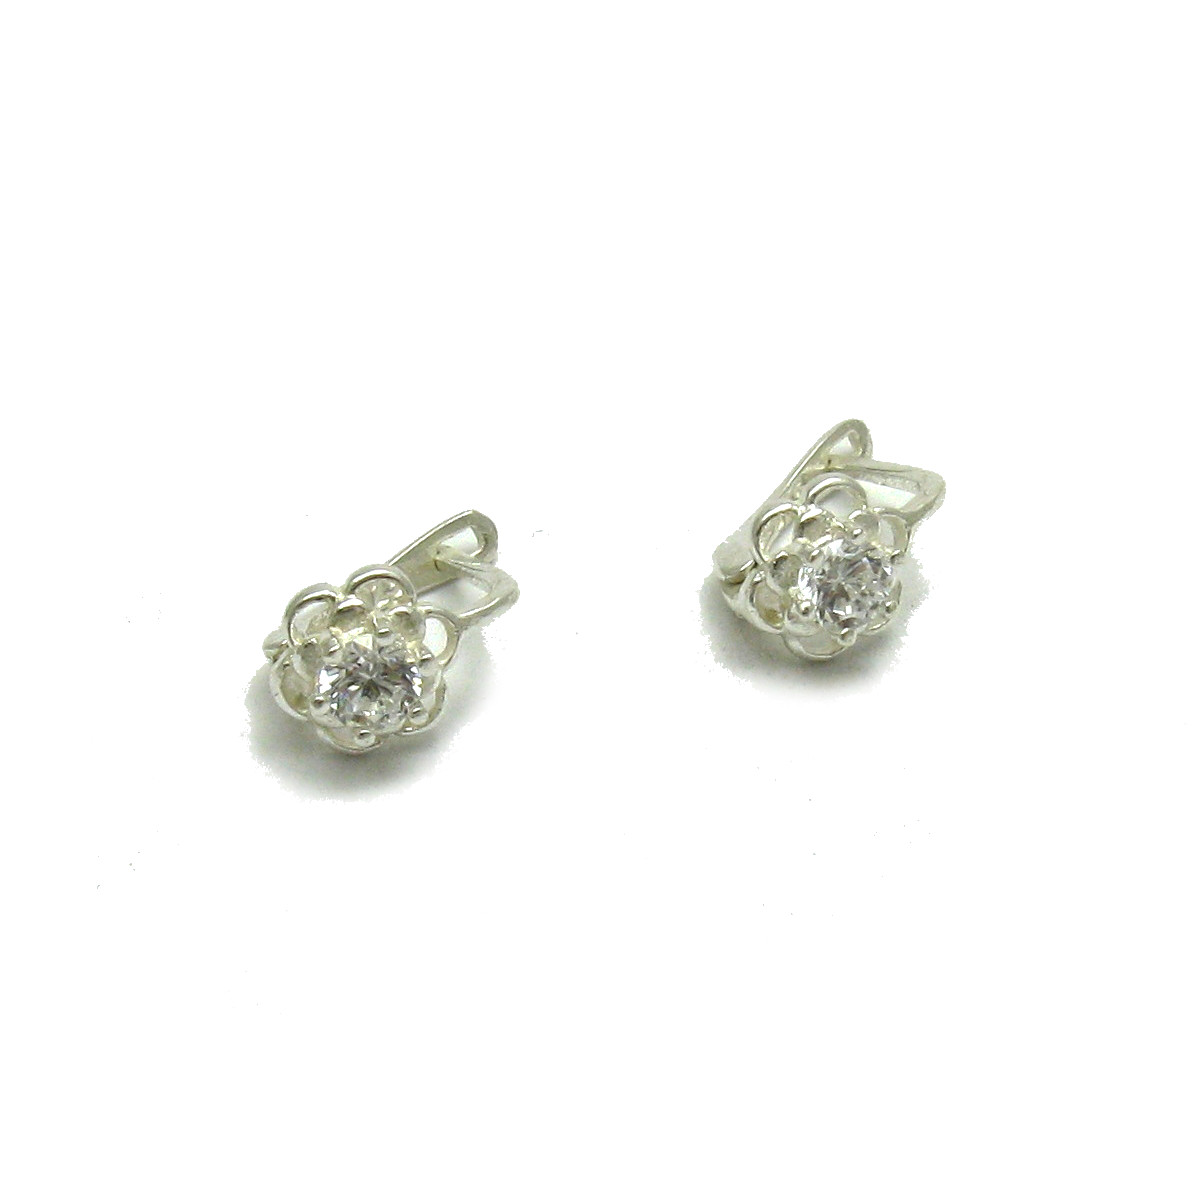 Silver earrings - E000652